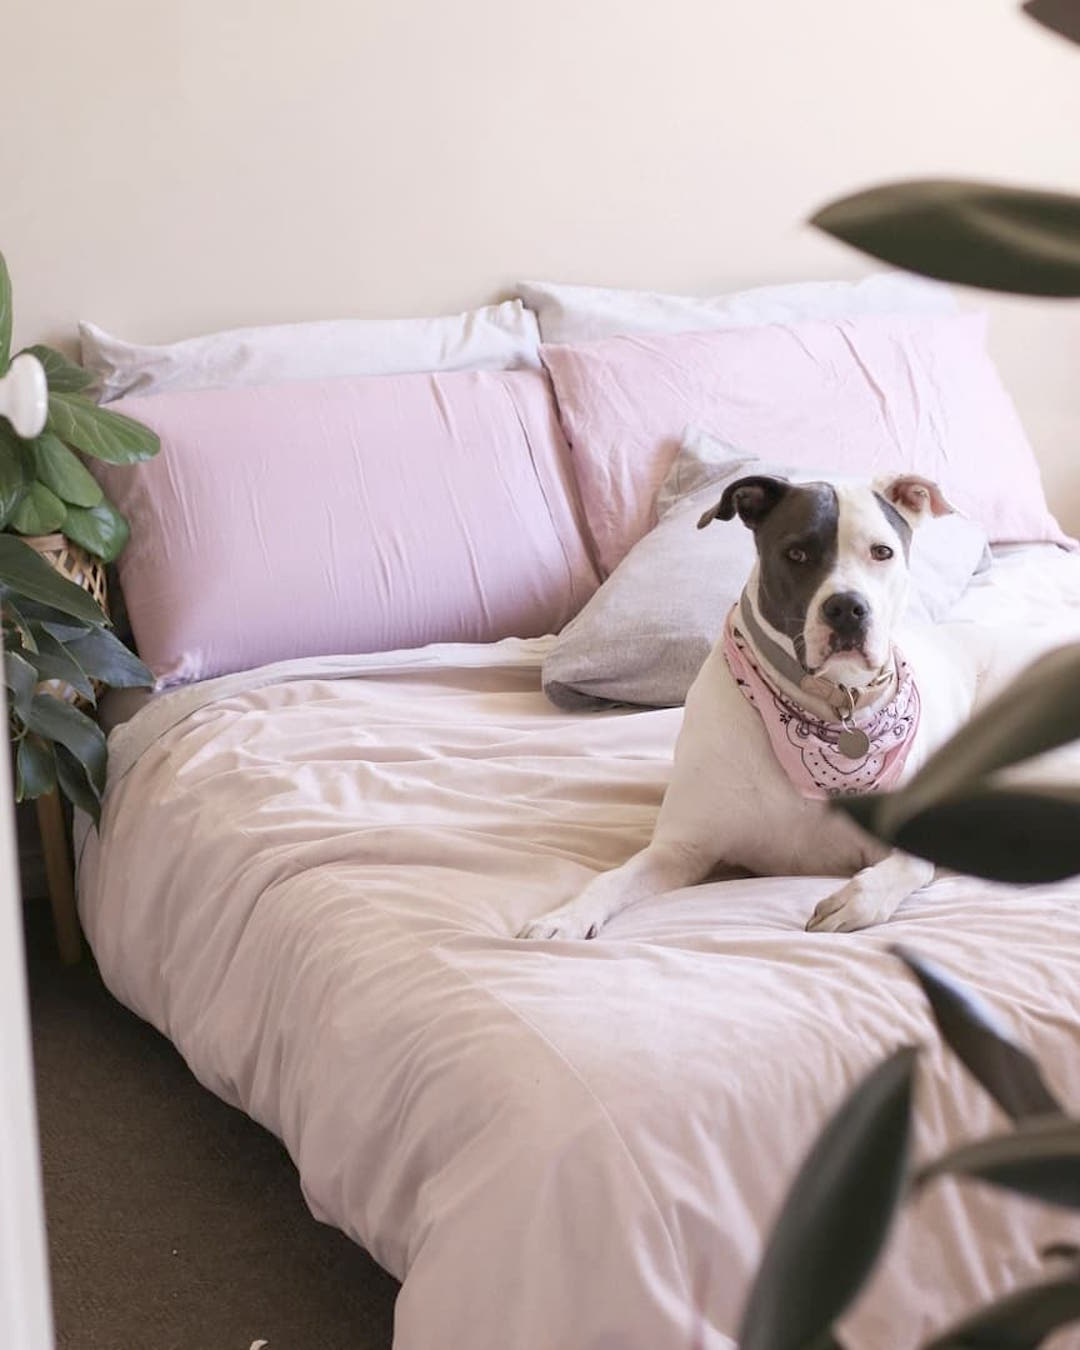 A dog lies on a plush pink bed.